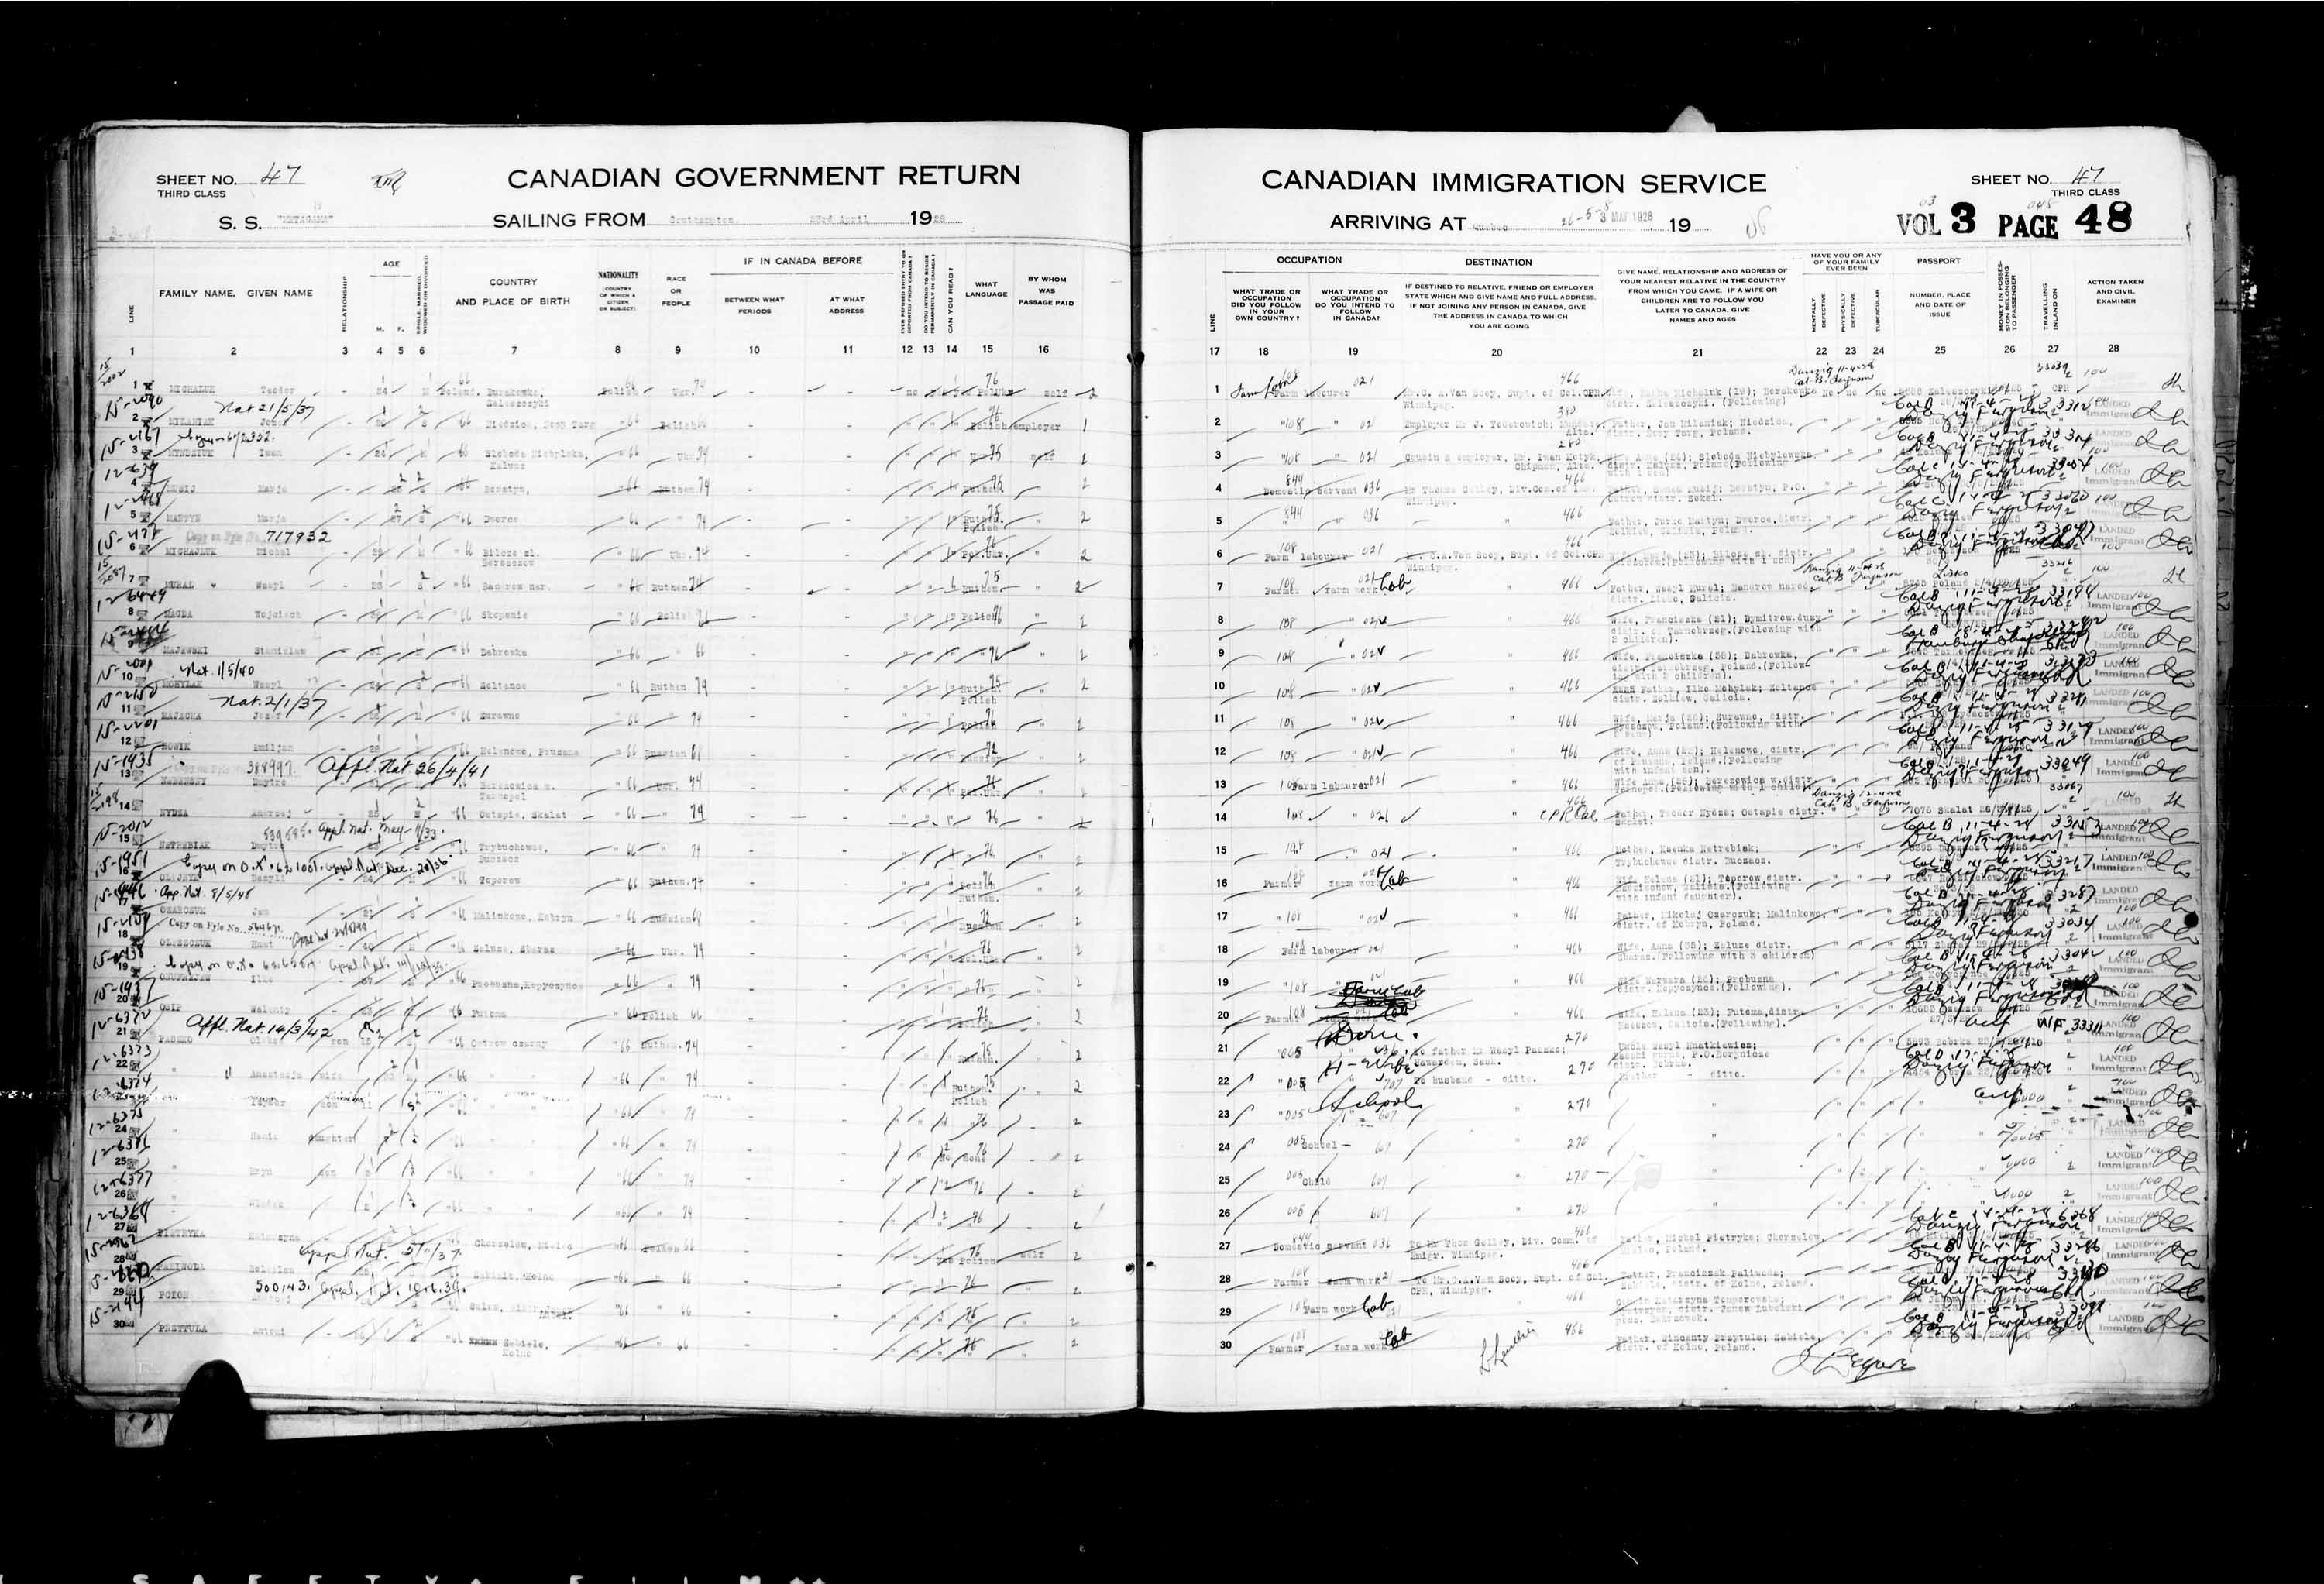 Title: Passenger Lists: Quebec City (1925-1935) - Mikan Number: 134839 - Microform: t-14741